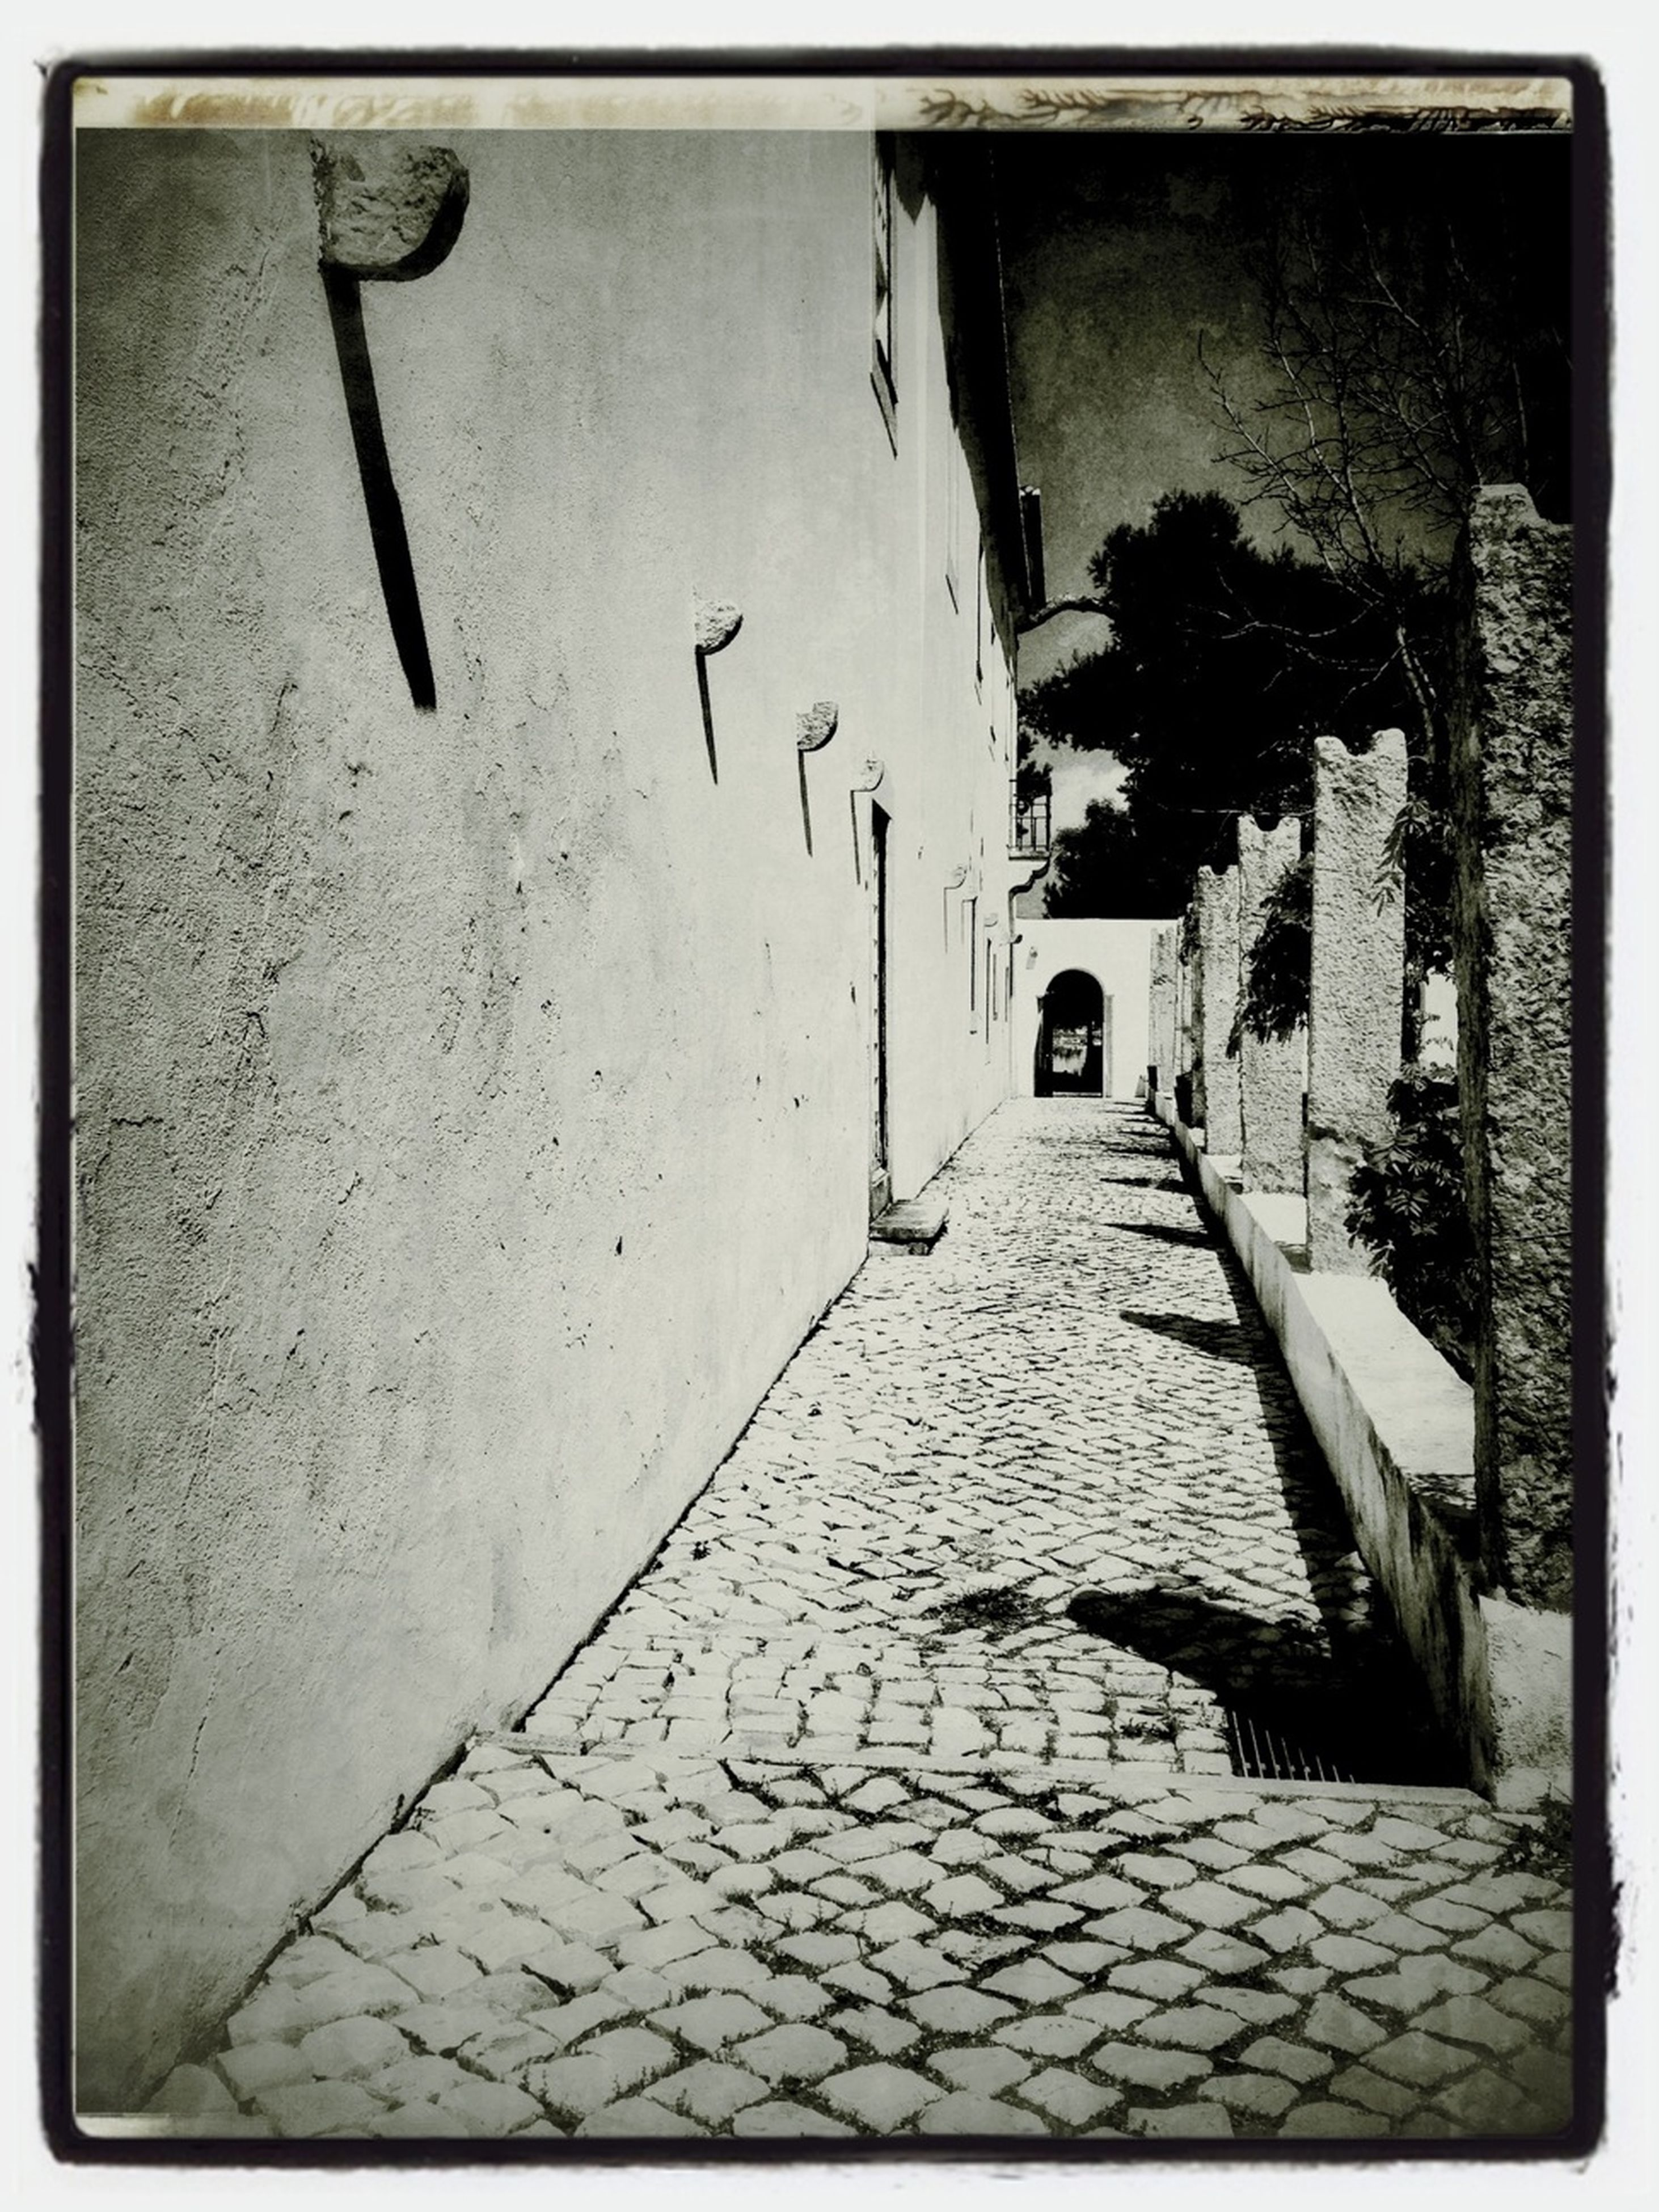 architecture, transfer print, built structure, auto post production filter, building exterior, the way forward, wall - building feature, indoors, building, diminishing perspective, wall, old, street, empty, cobblestone, no people, day, lighting equipment, house, vanishing point